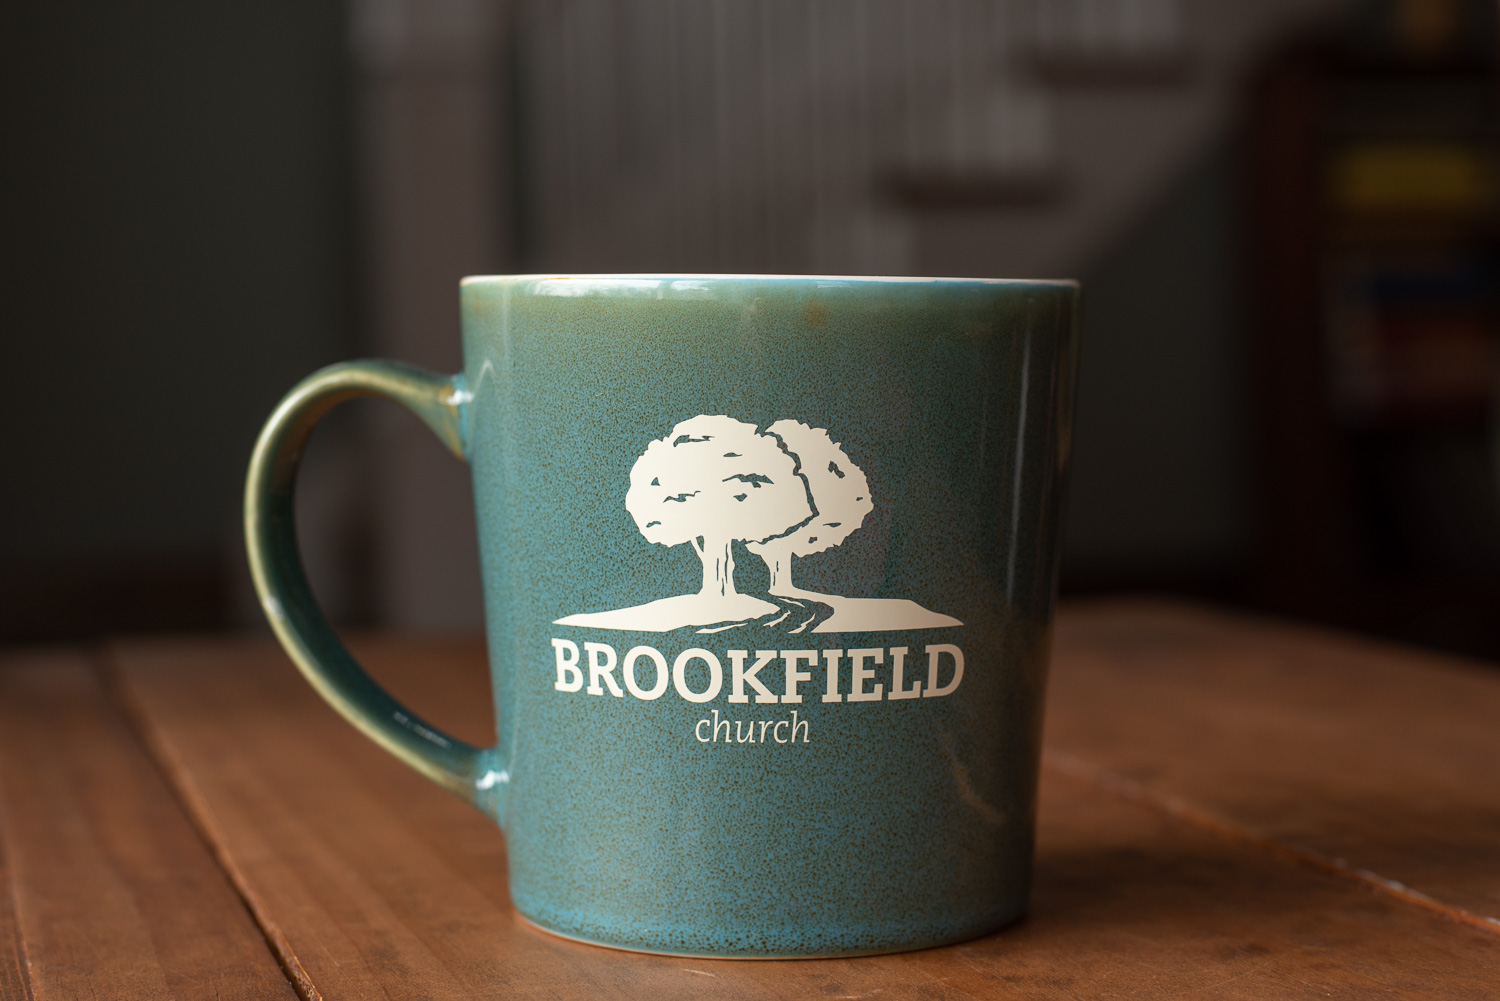 A coffee mug with an alternative logo for Brookfield Church in Athens, Ohio.